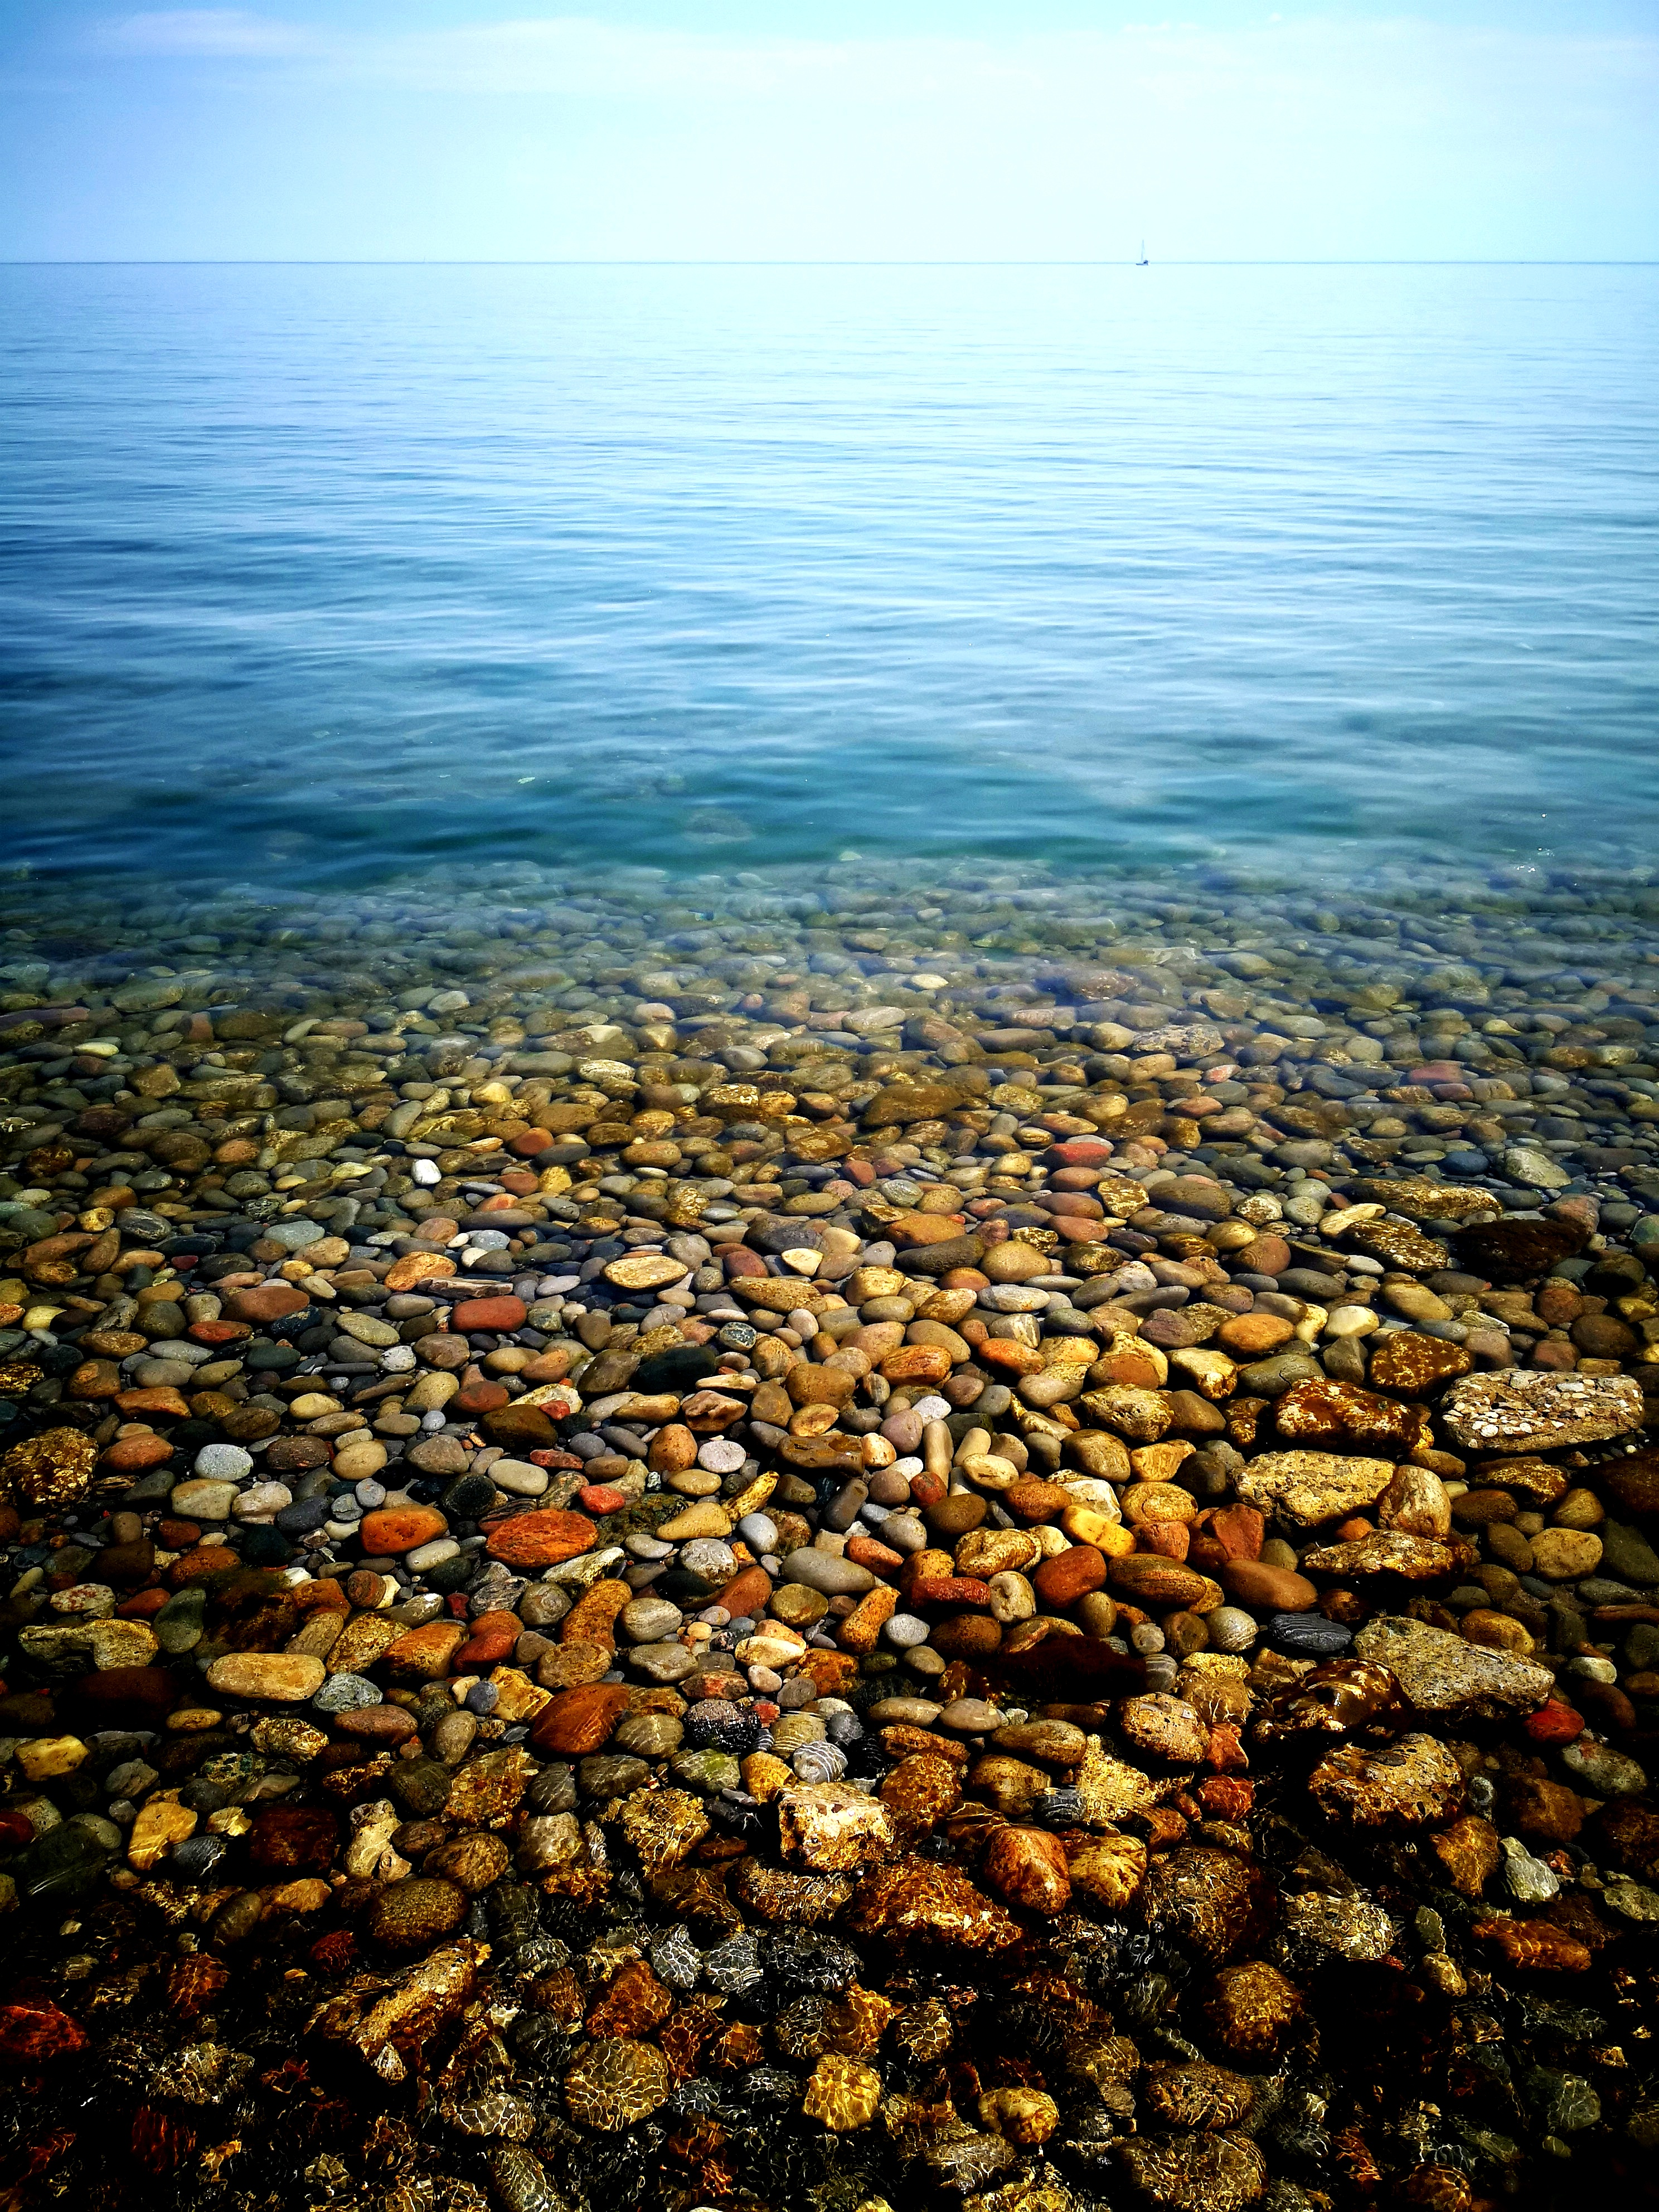 I visited Lake Ontario and saw this beautiful view. It was a sunny afternoon, the water was absolutely still and pristine clear. So clear infact, that you could see the pebbles lying below. I just clicked it.